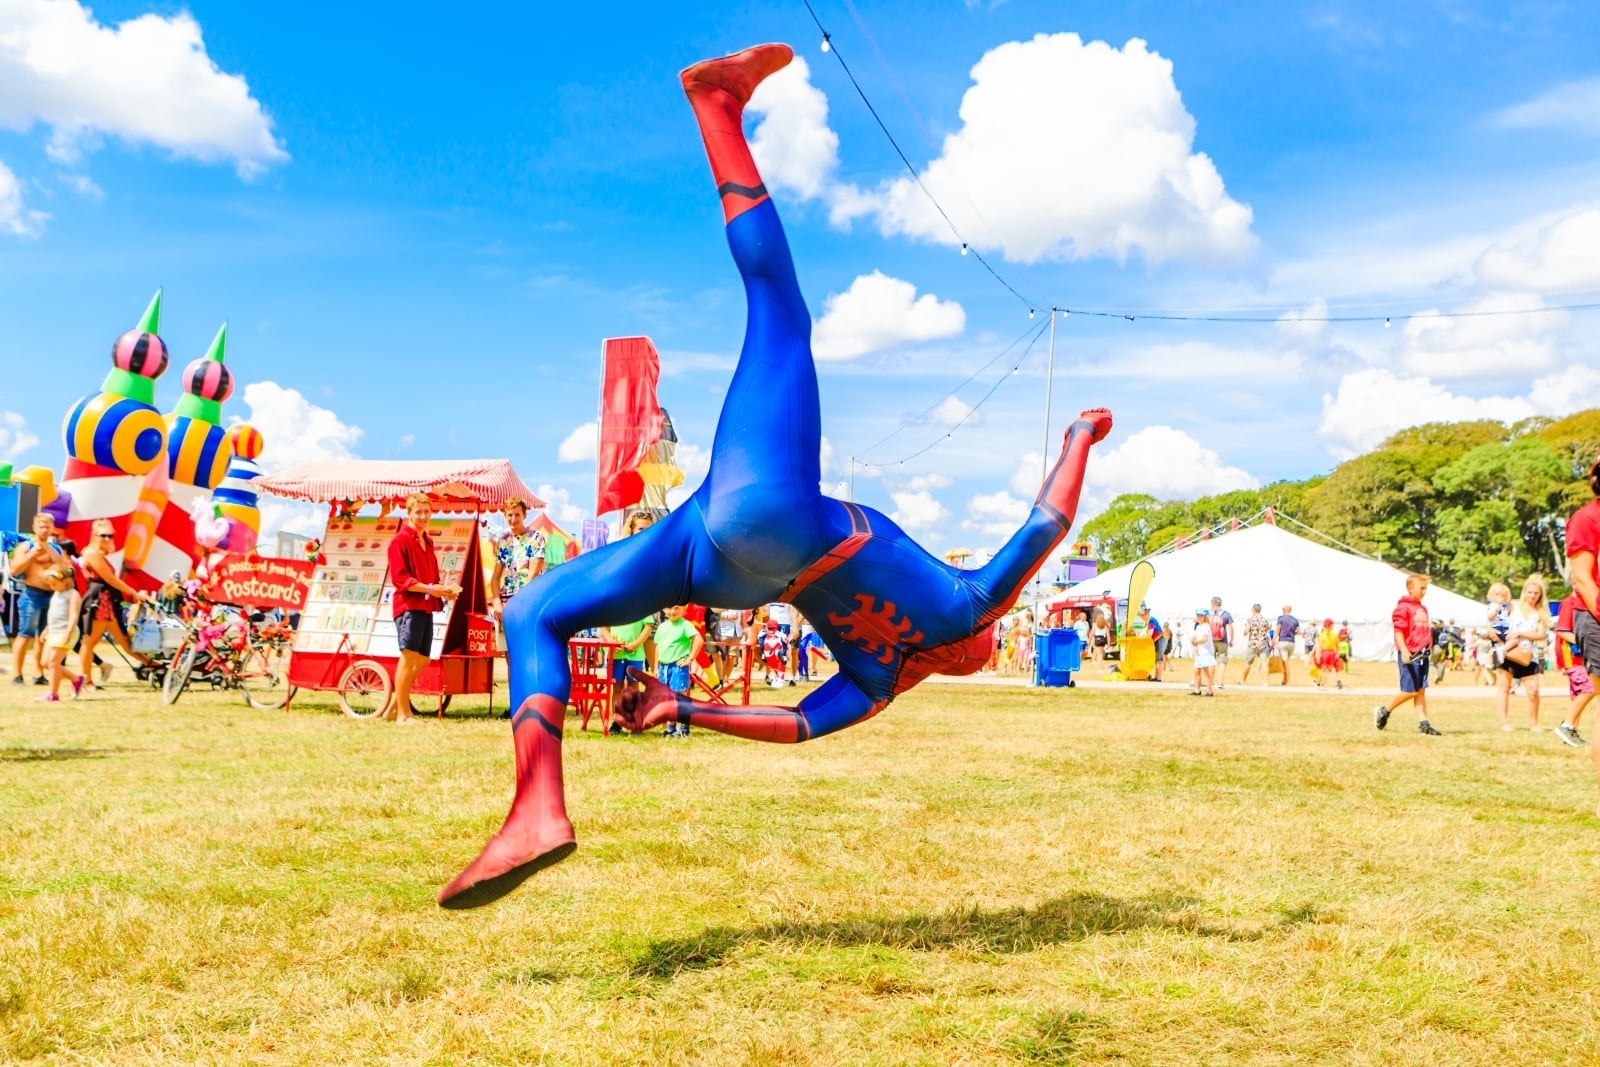 Spiderman Camp Bestival ©Leora Bermeister